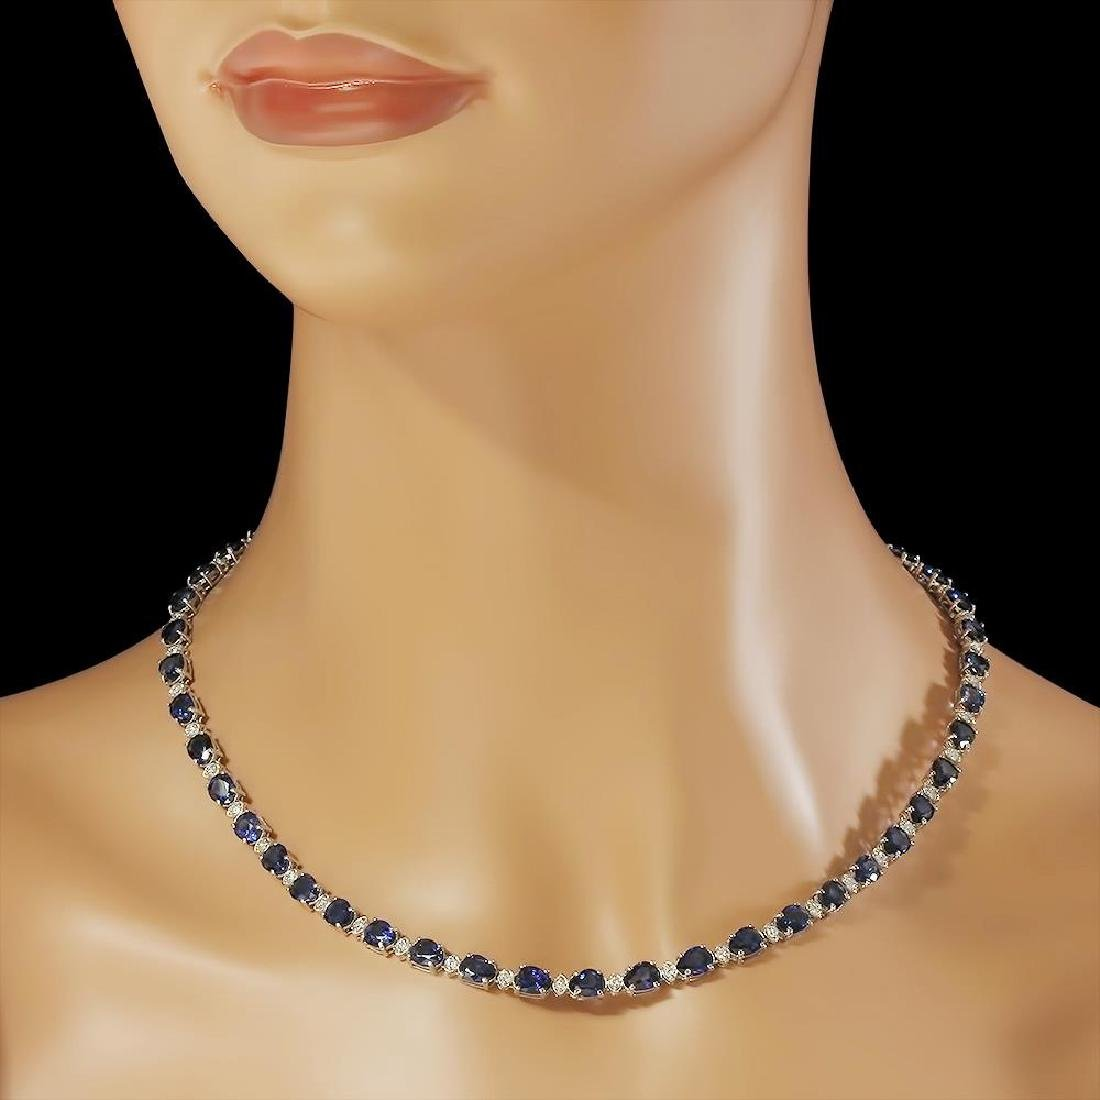 14K Gold 31.39ct Sapphire 1.52ct Diamond Necklace - 3